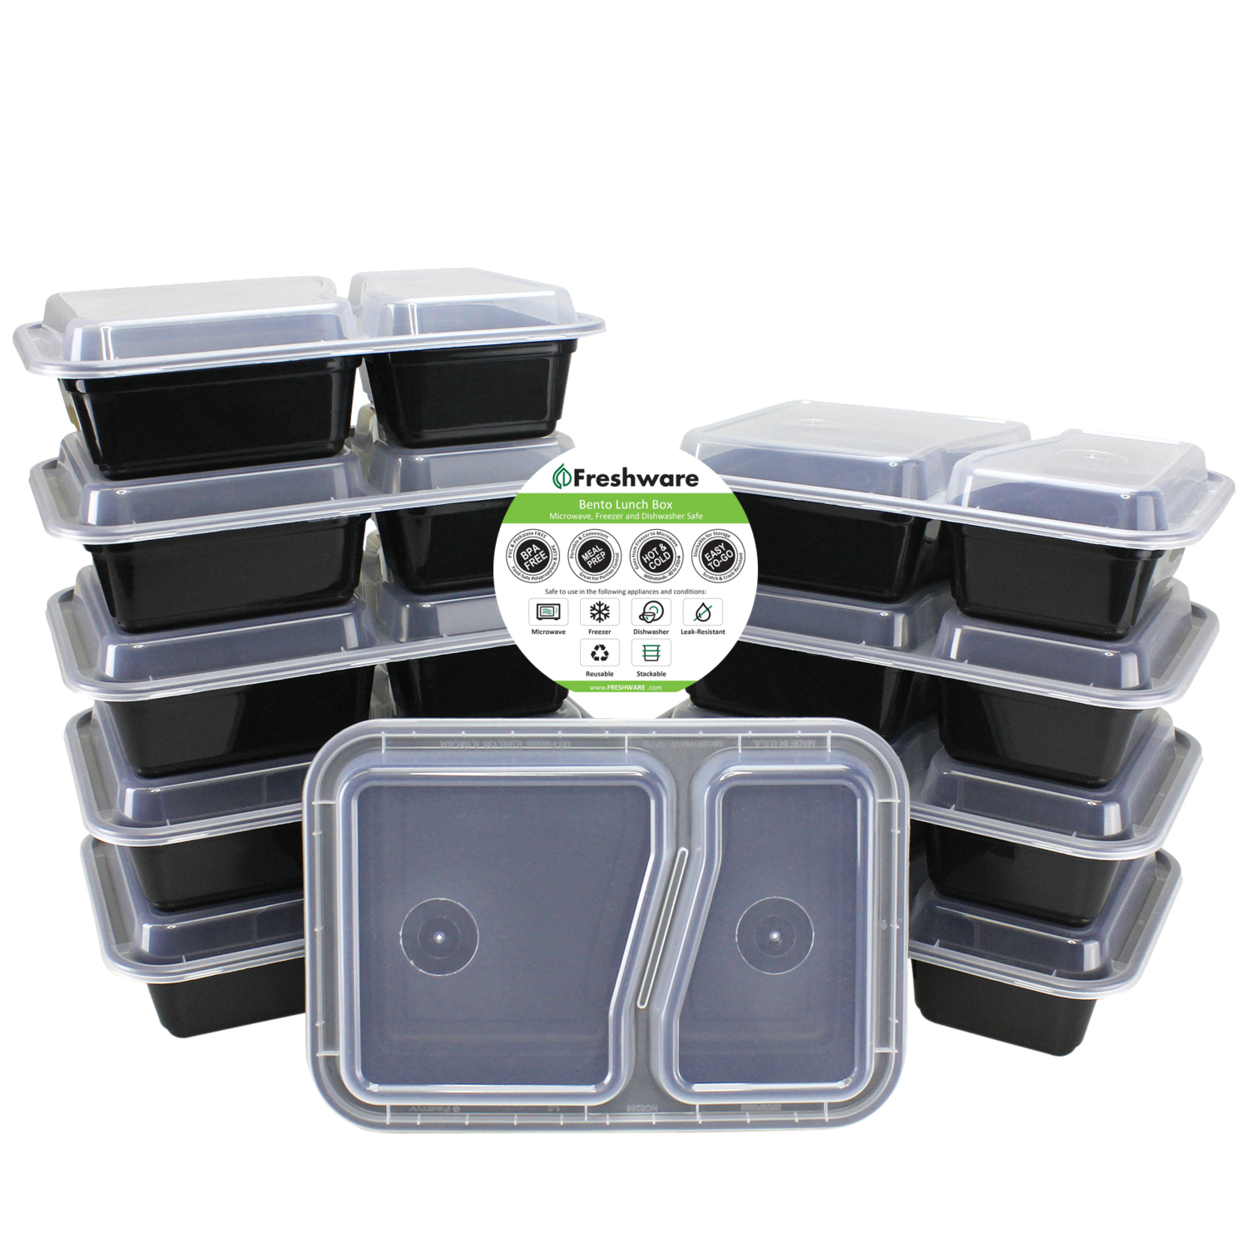 Freshware 10-pack 2 Compartment Bento Lunch Boxes With Lids Meal Prep, Portion Control, 21 Day Fix & Food Storage Containers (27oz)